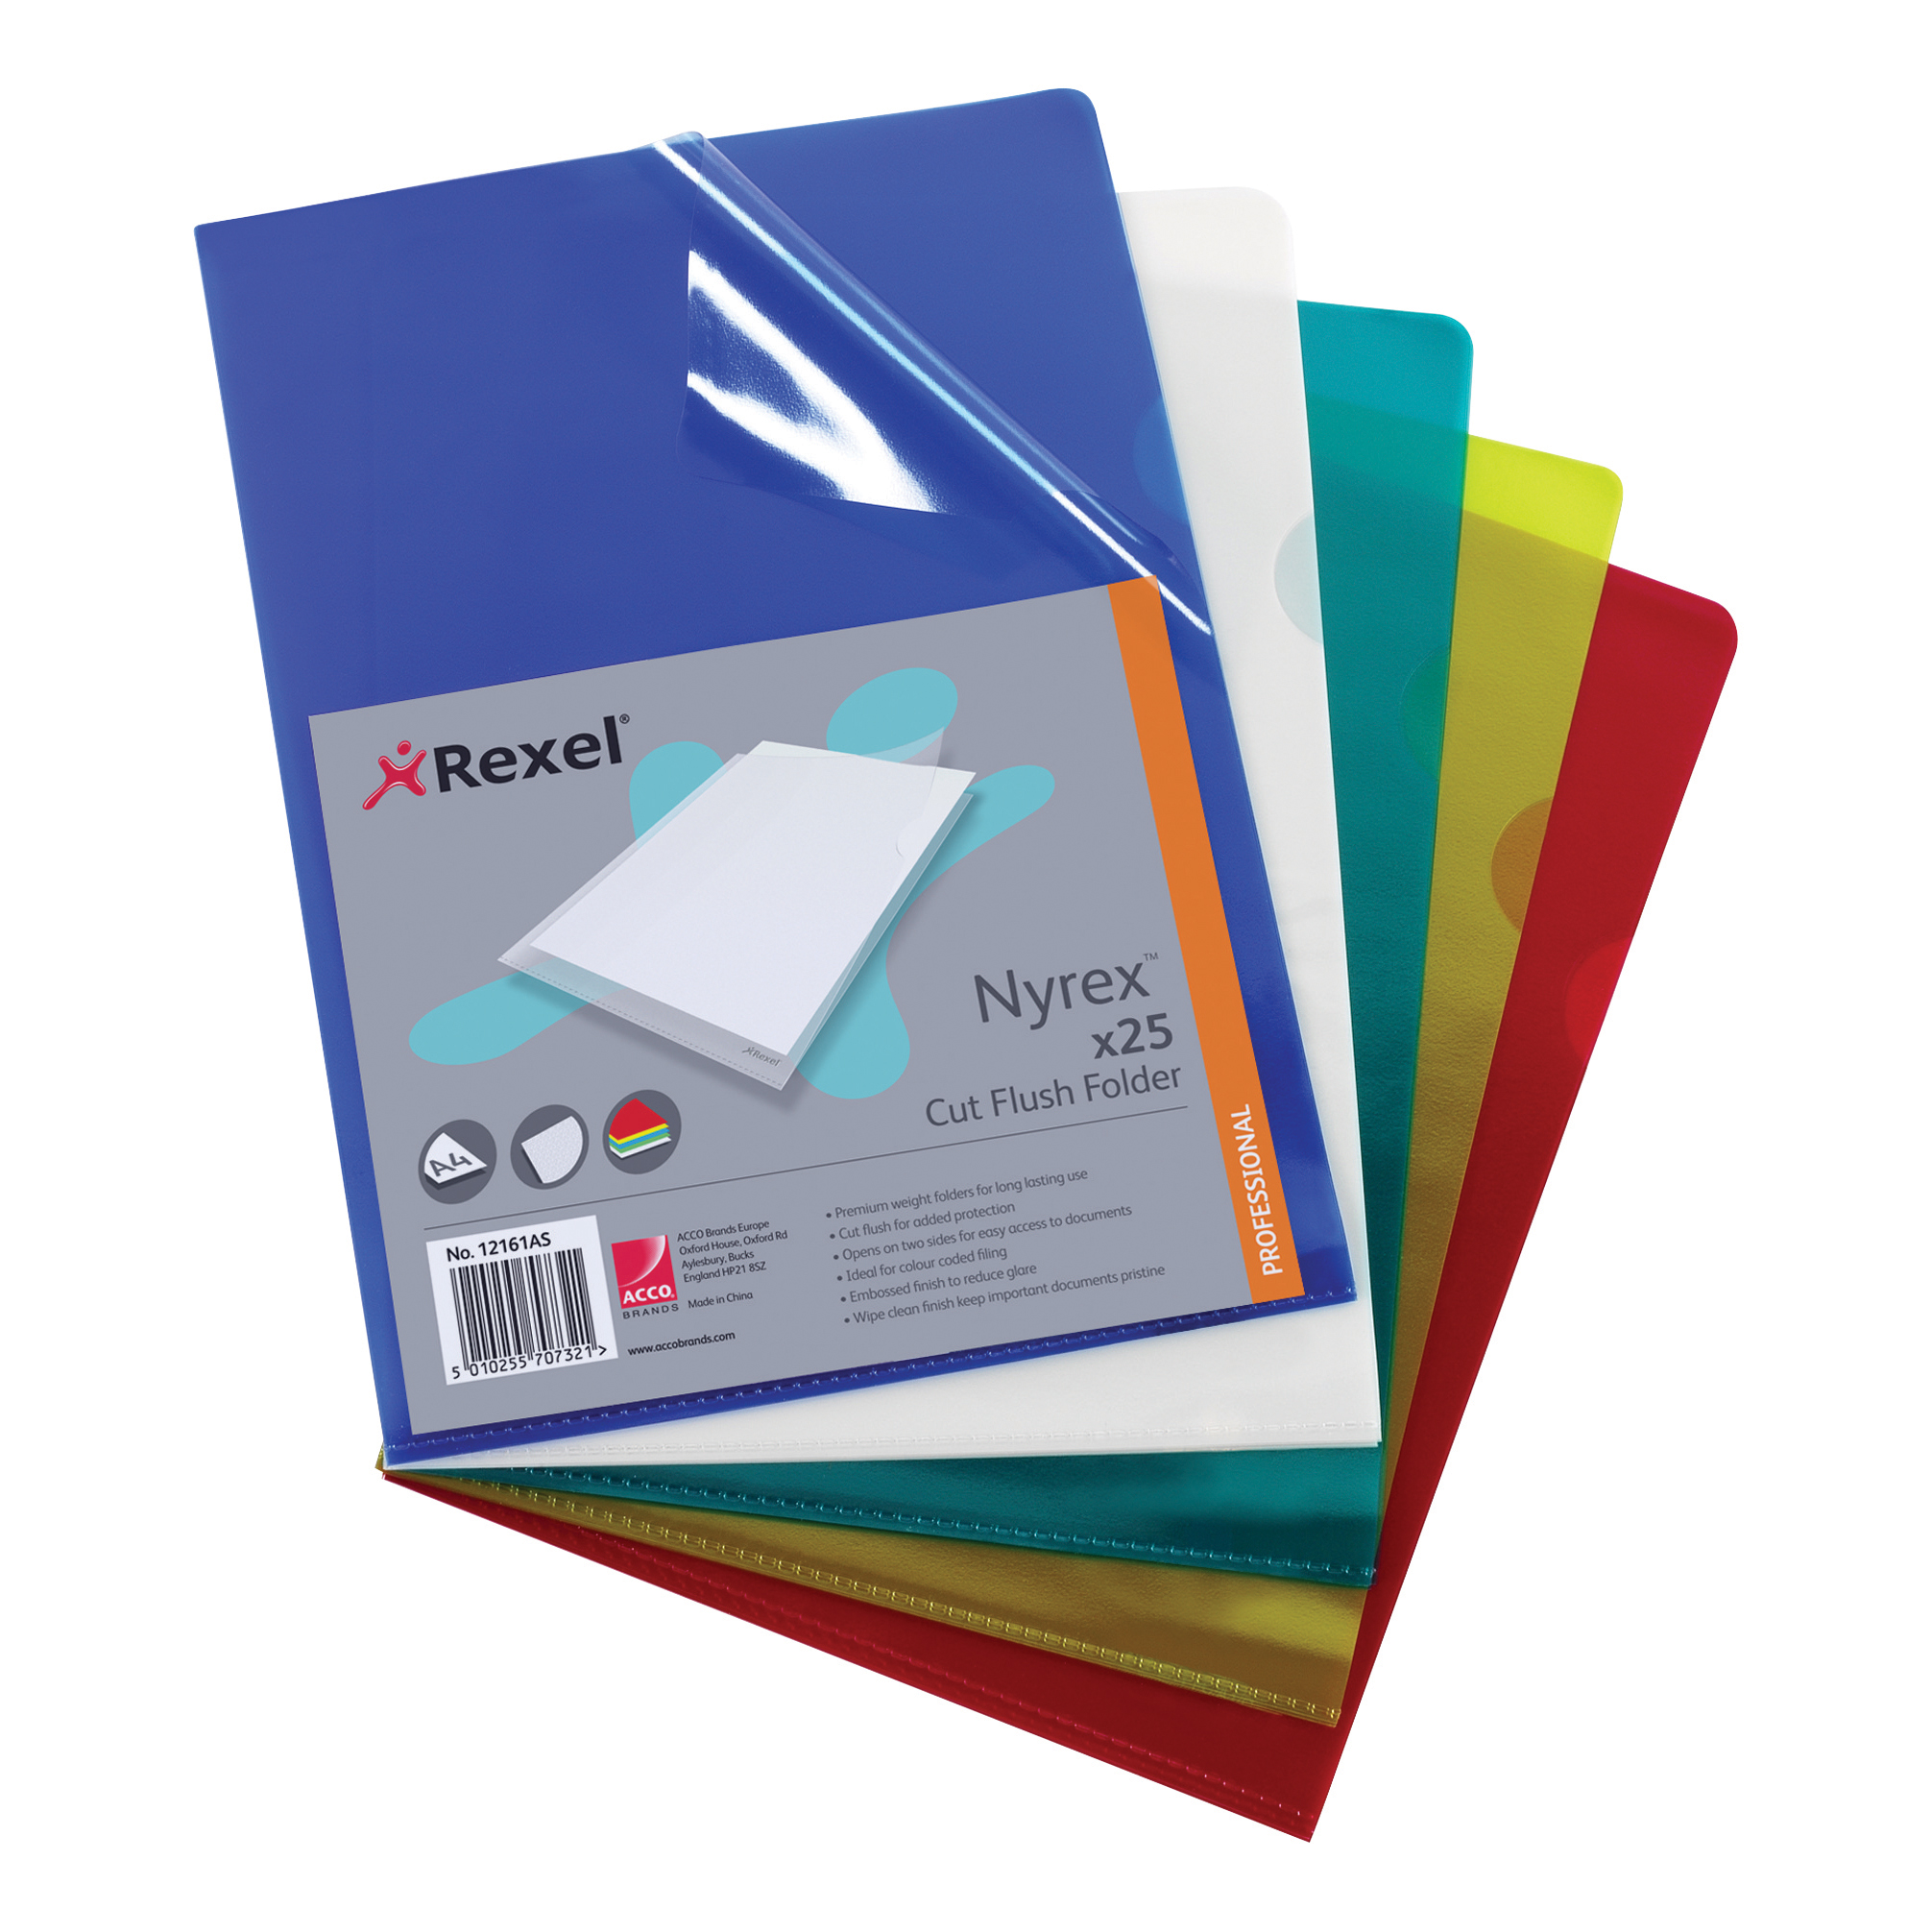 Clip Files Rexel Nyrex Folder Cut Flush A4 Assorted Ref 12161AS Pack 25